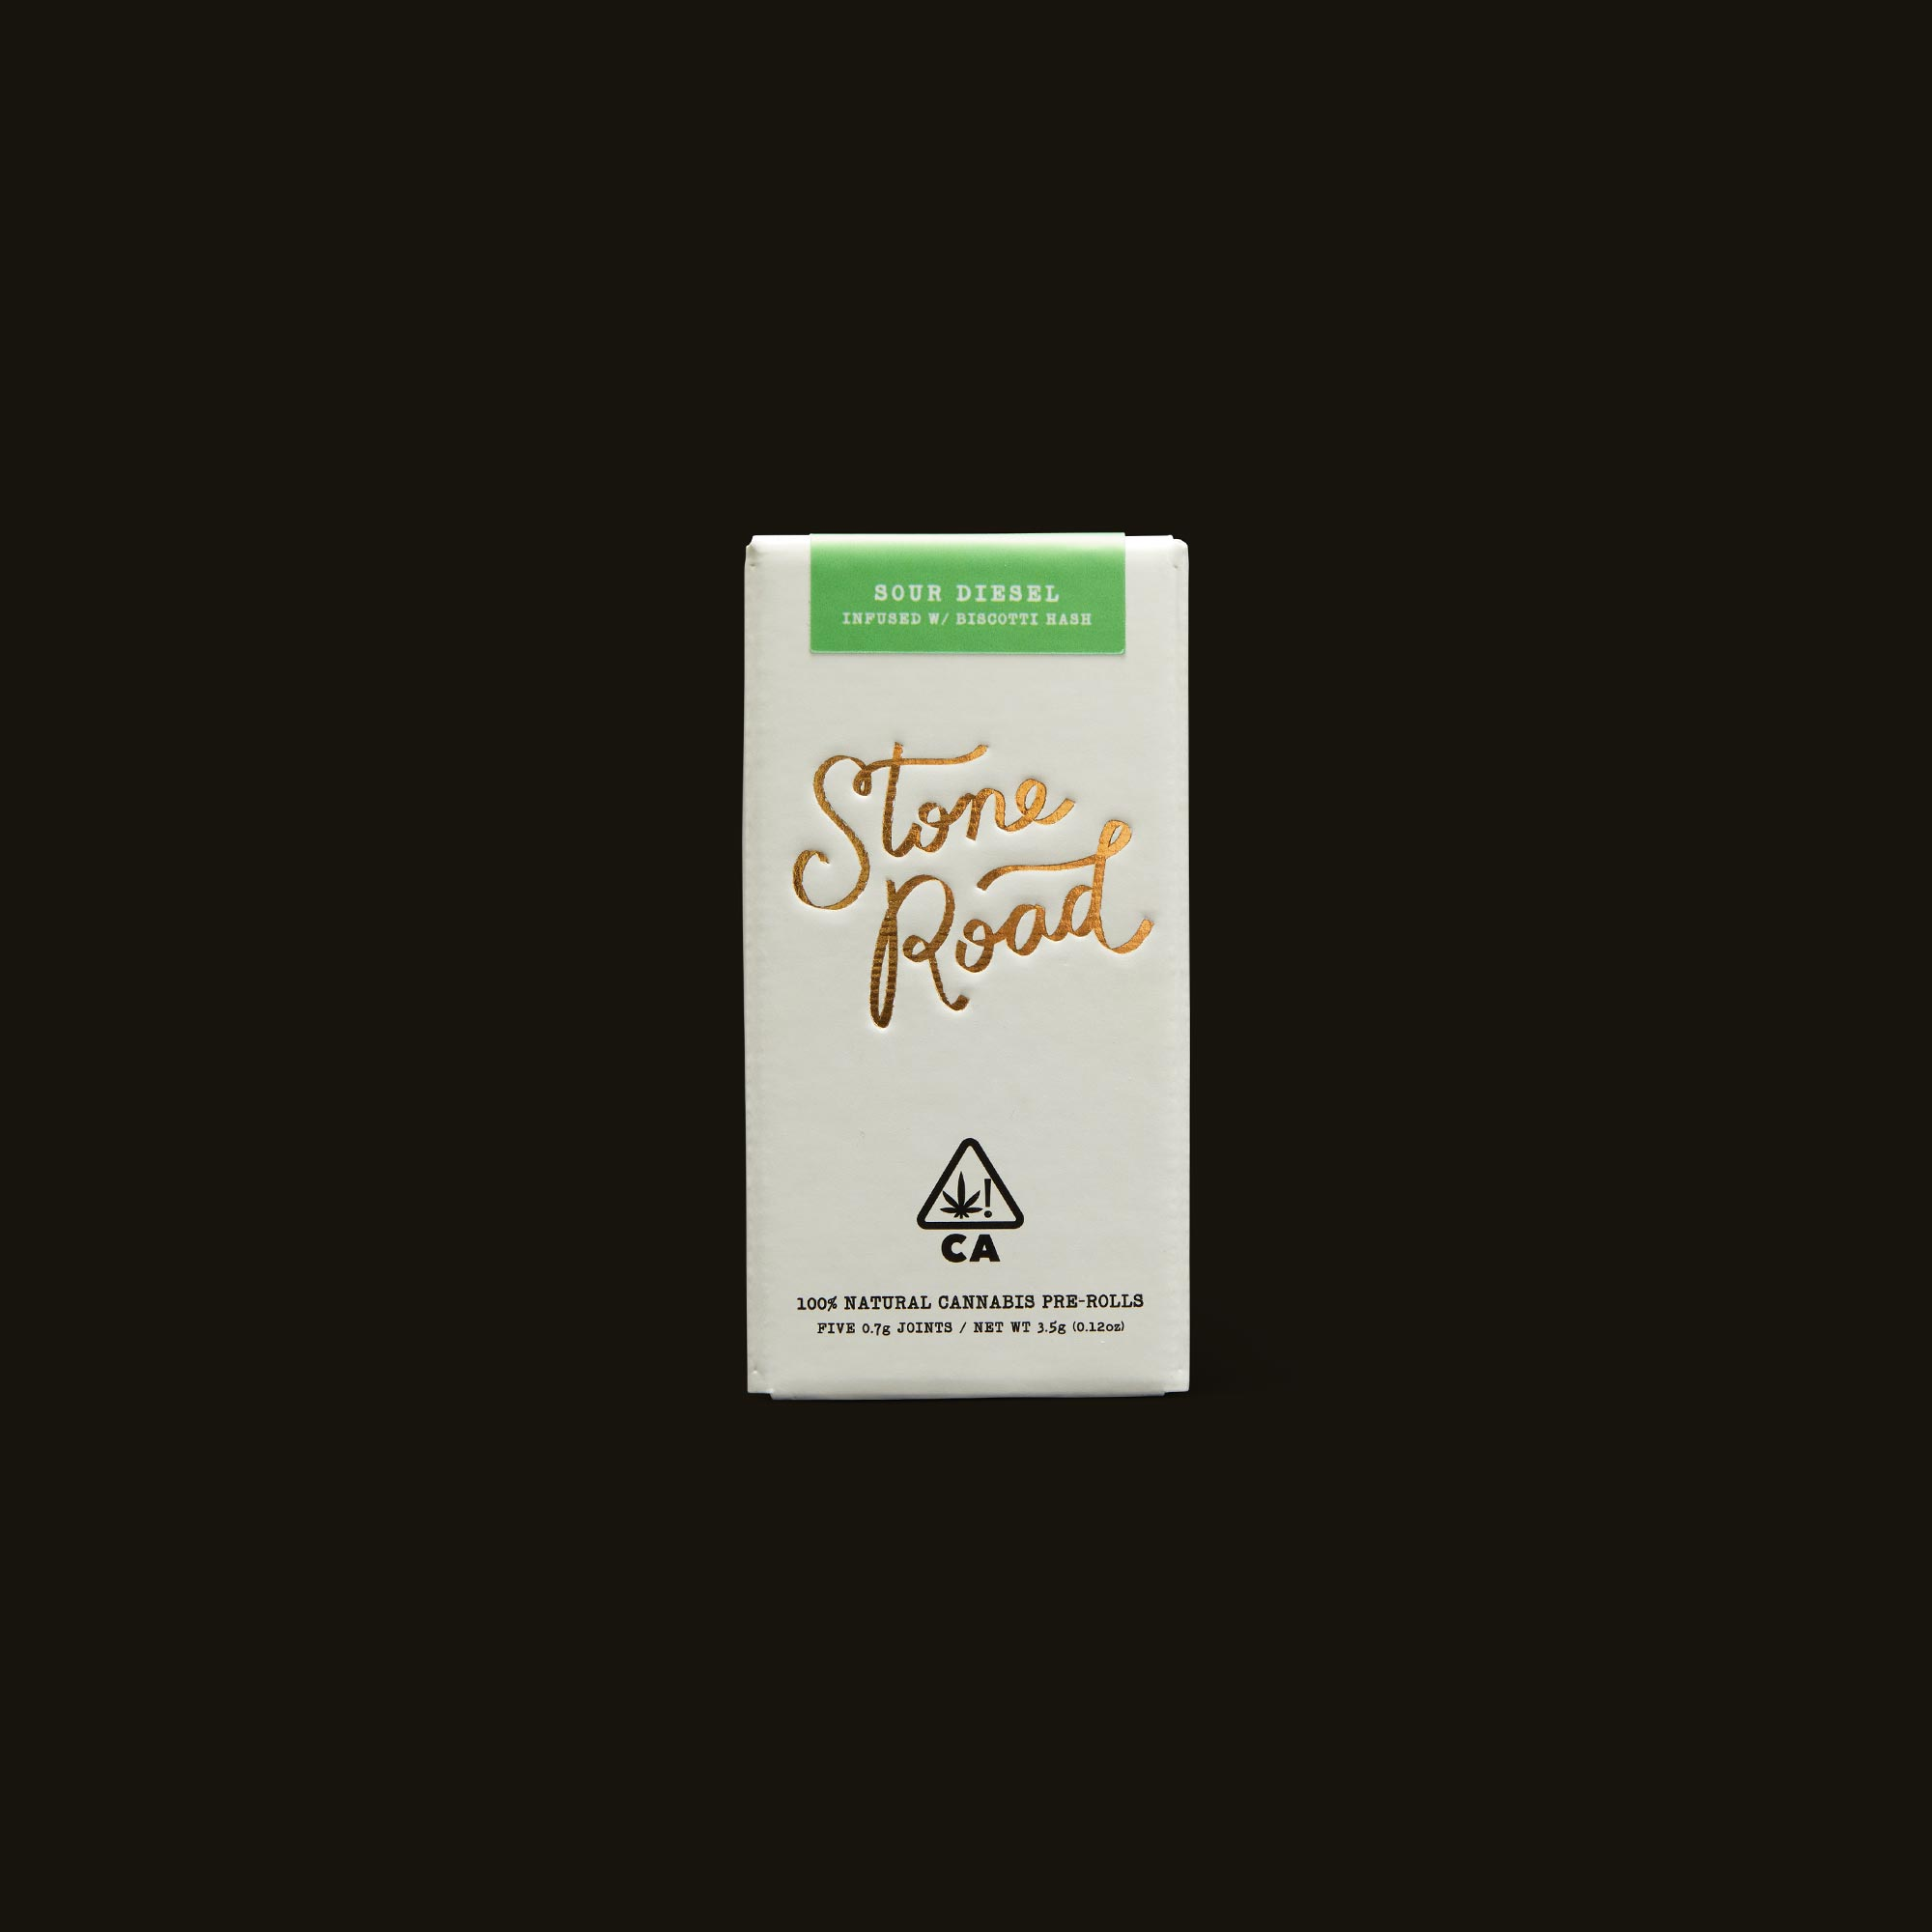 Stone Road Sour Diesel Infused Pre-Roll Pack Front Box